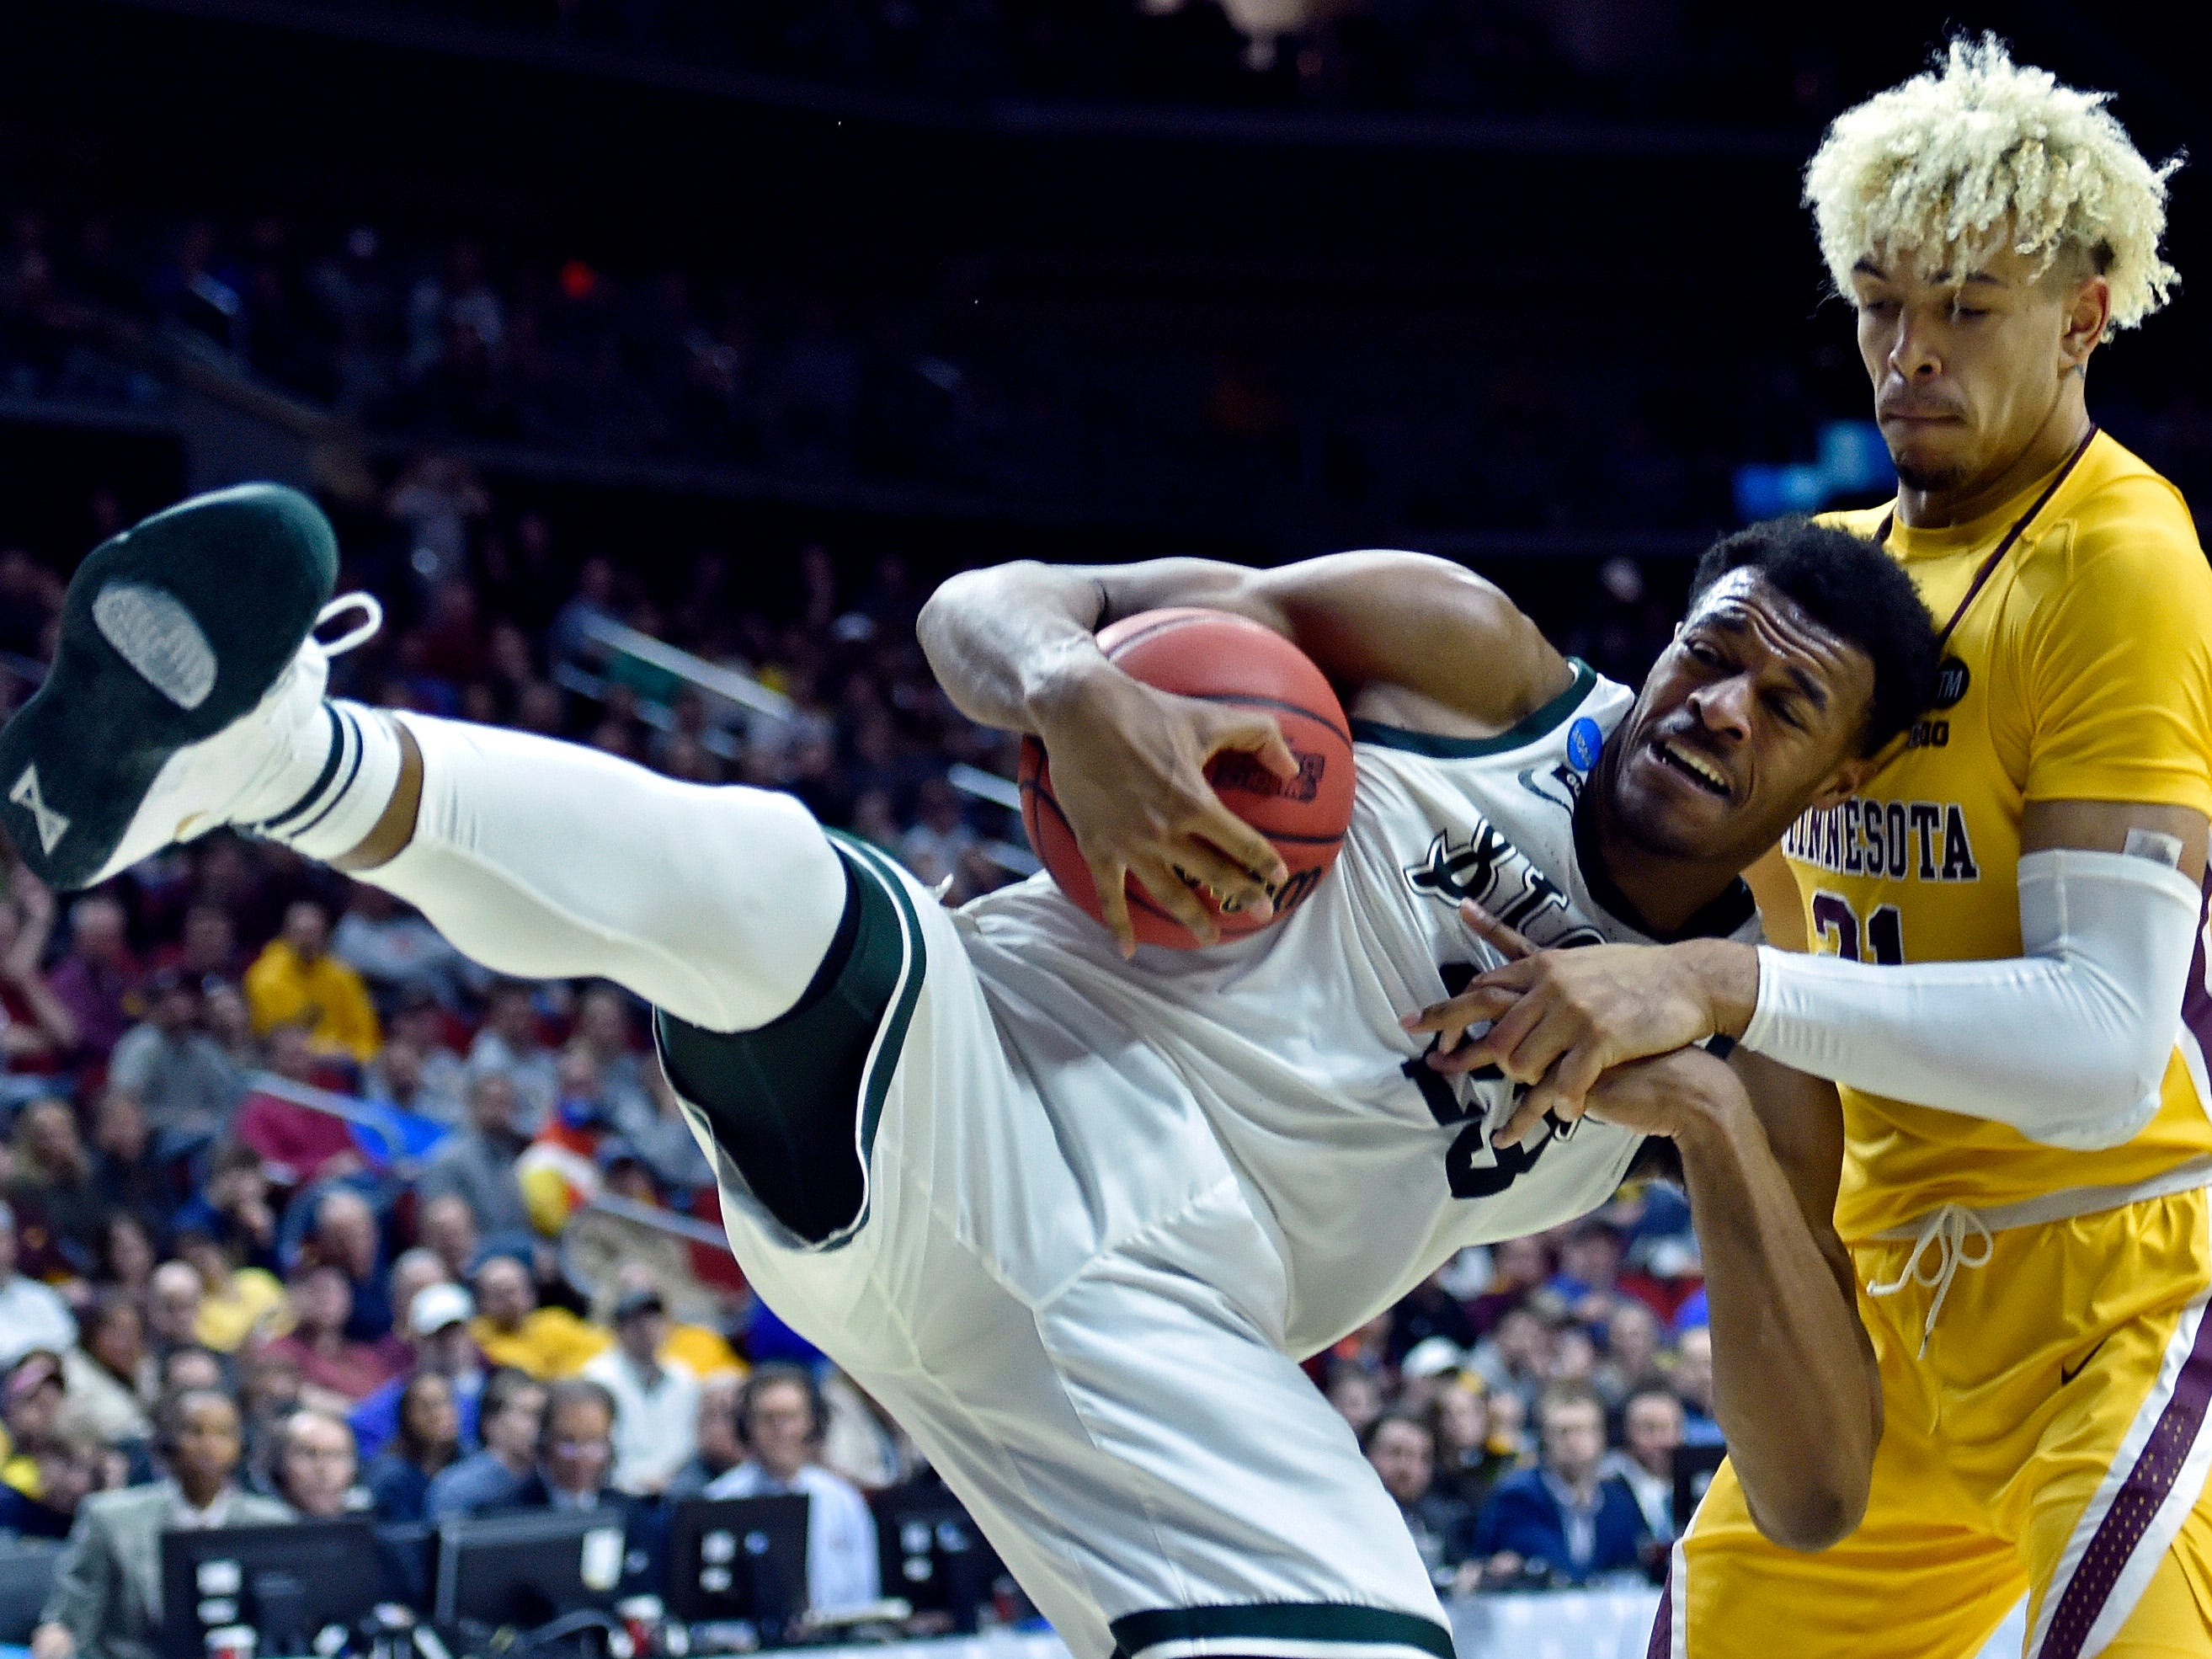 Round of 32: Michigan State Spartans forward Xavier Tillman and Minnesota Golden Gophers forward Jarvis Omersa go for a rebound.